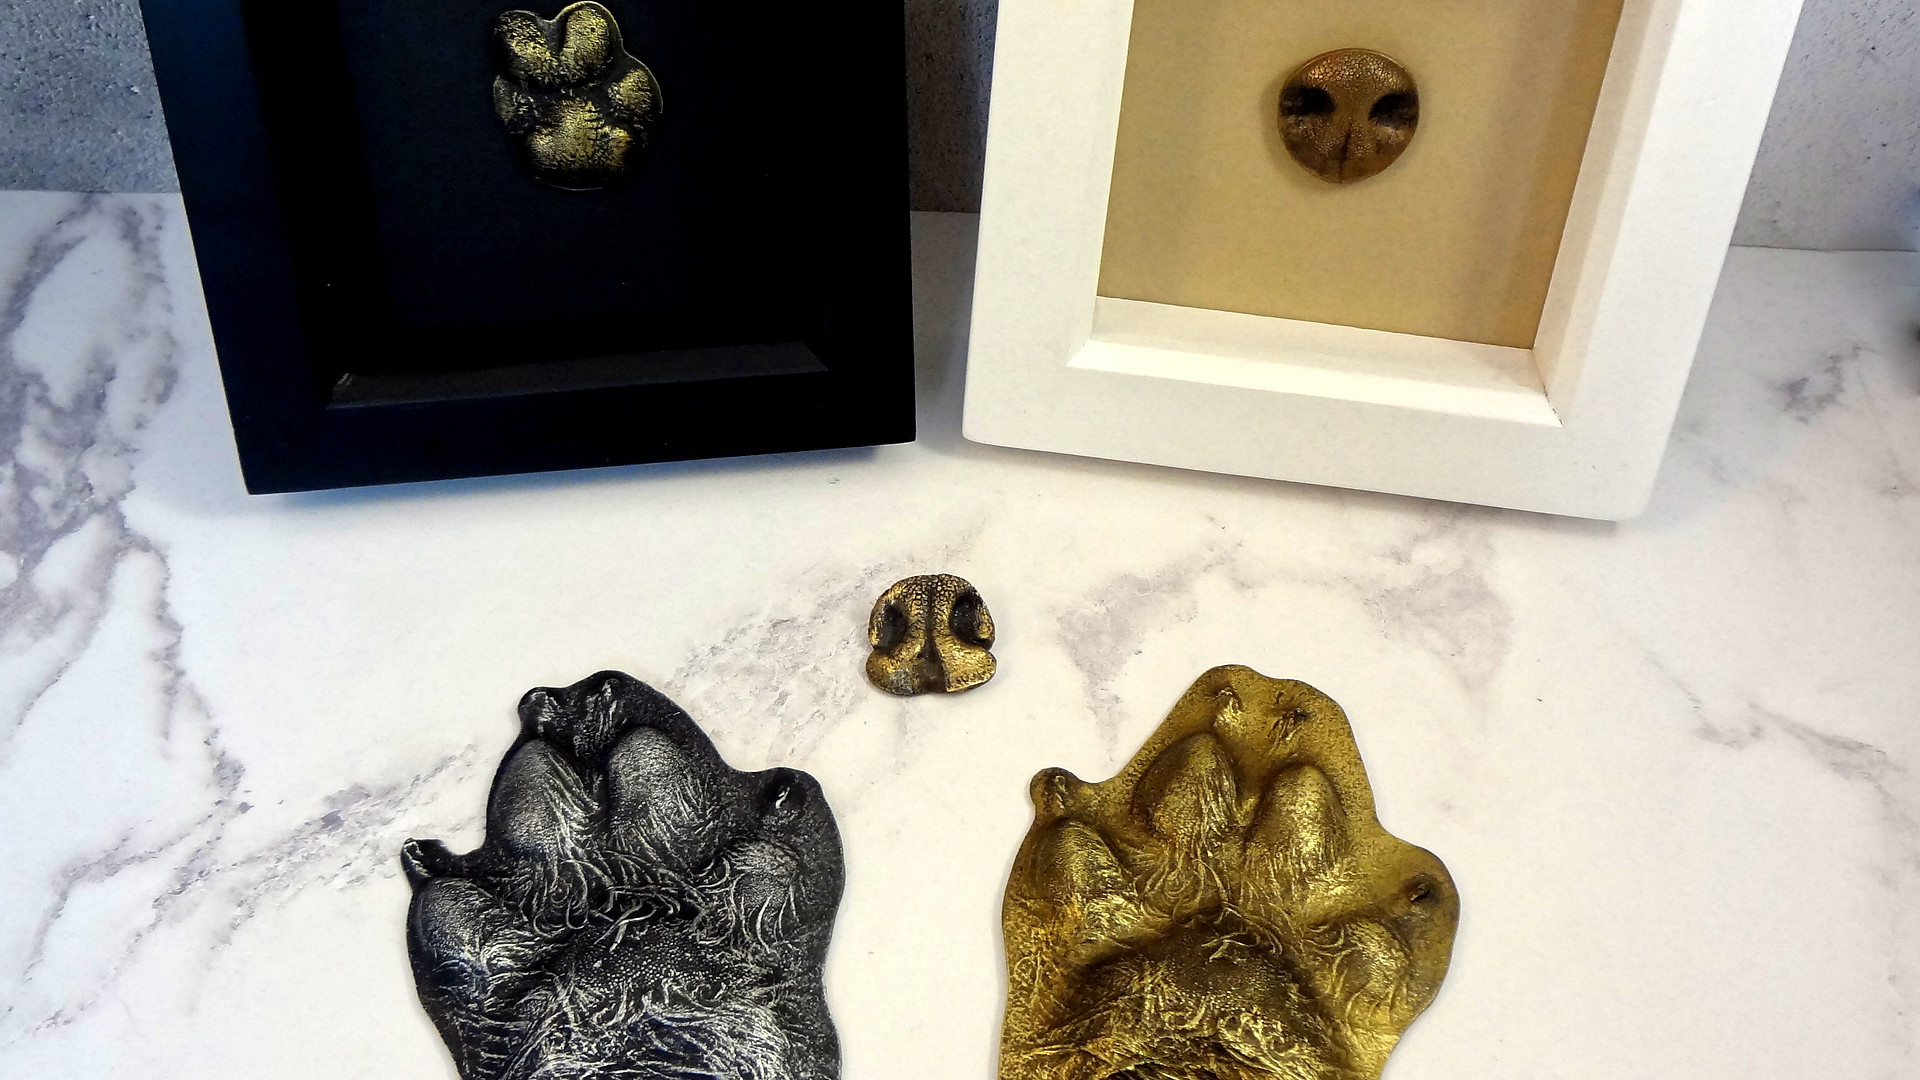 Beautiful nose casts and paw print for cats and dogs to be turned into beautiful framed keepsakes.